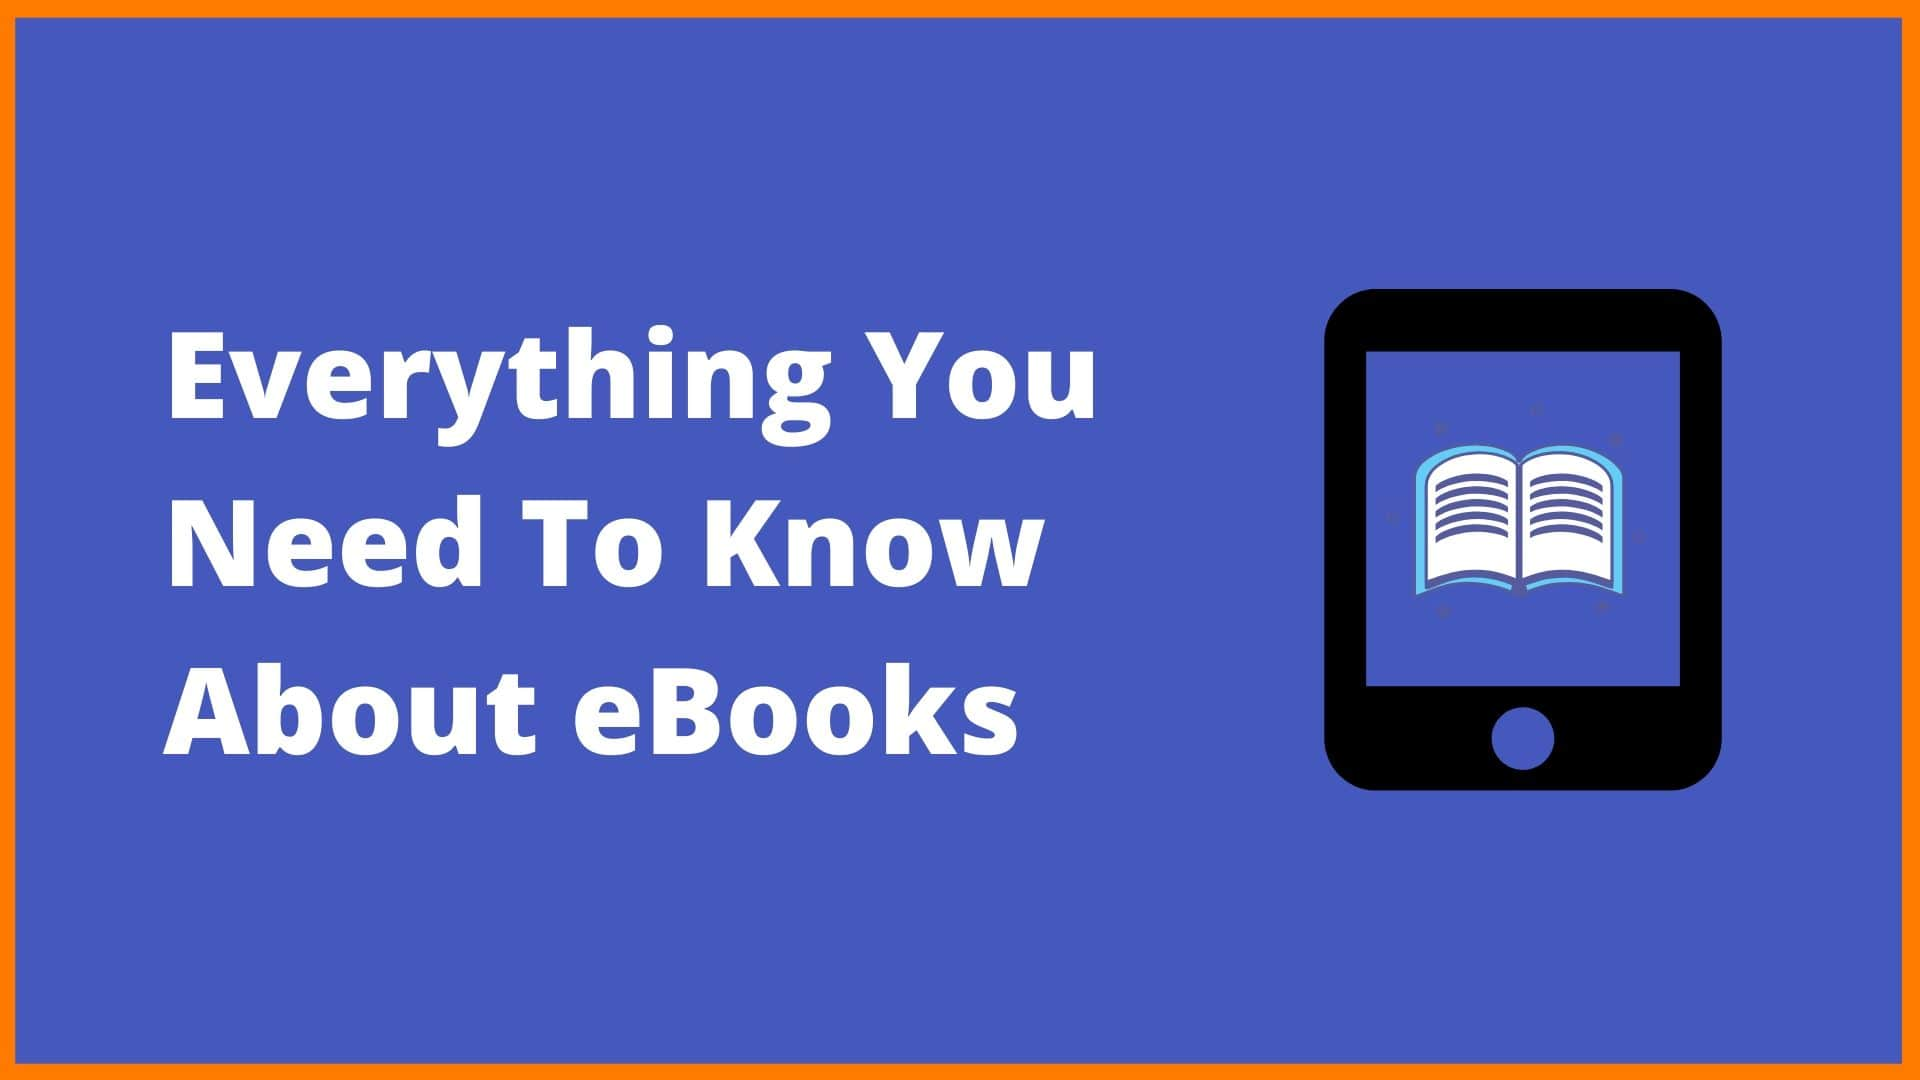 Everything You Need To Know About eBooks